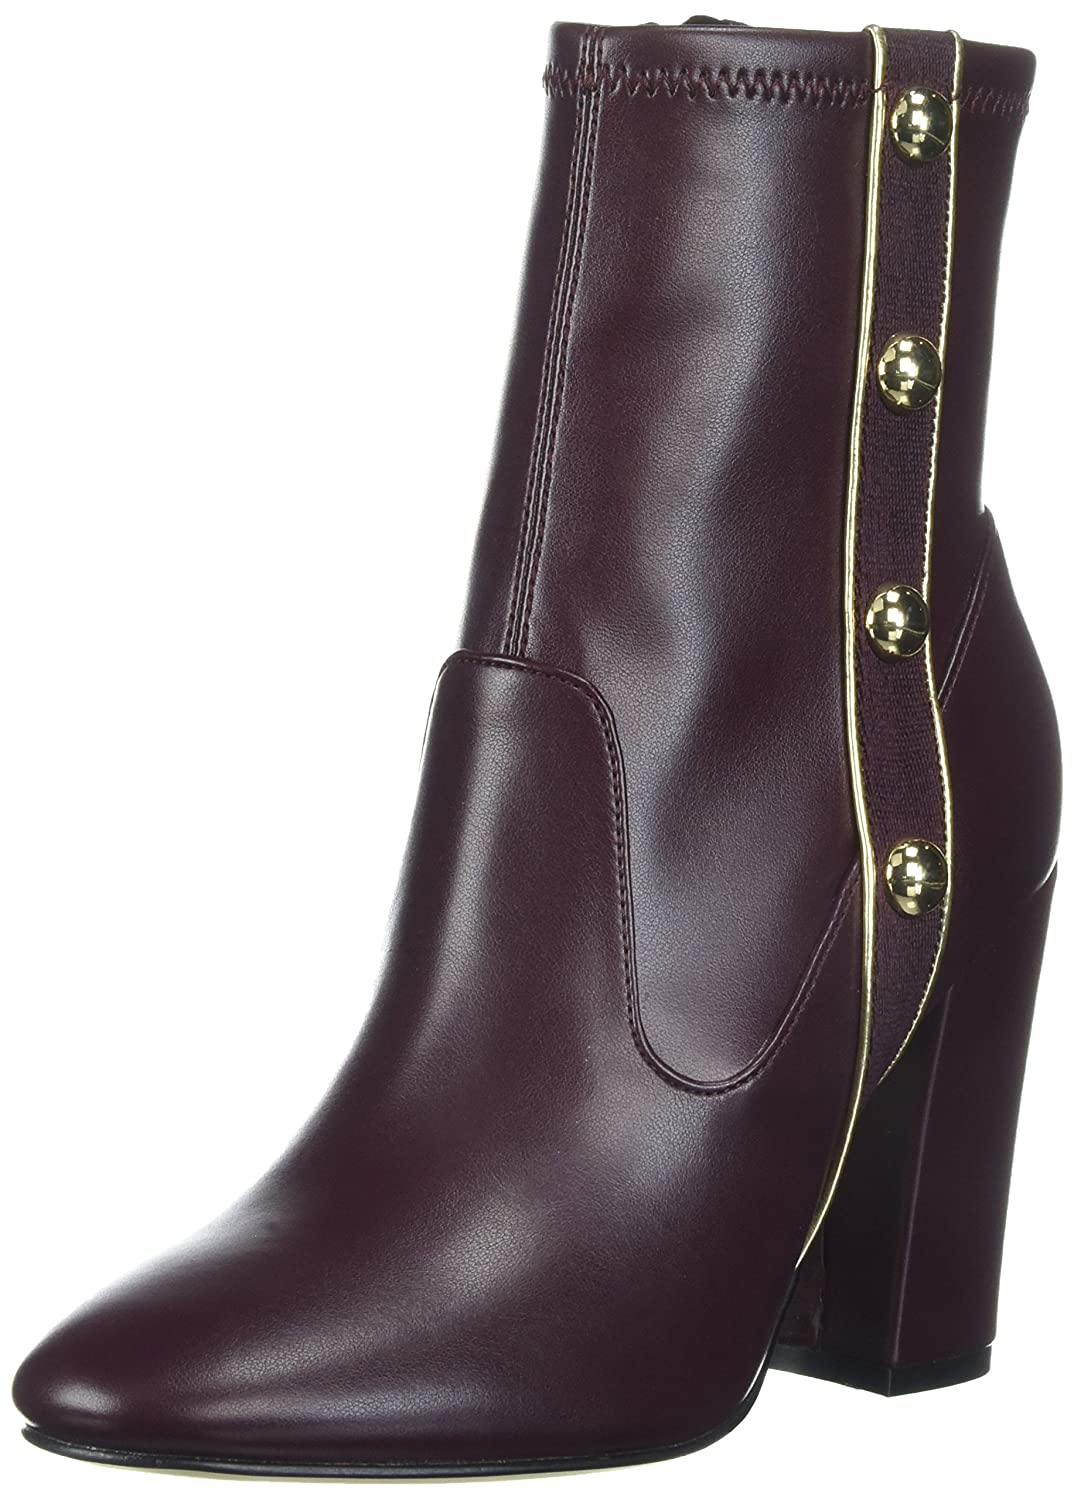 Marc Fisher Women's Abela Fashion Boot B0714K5DJY 7.5 B(M) US|Burgundy